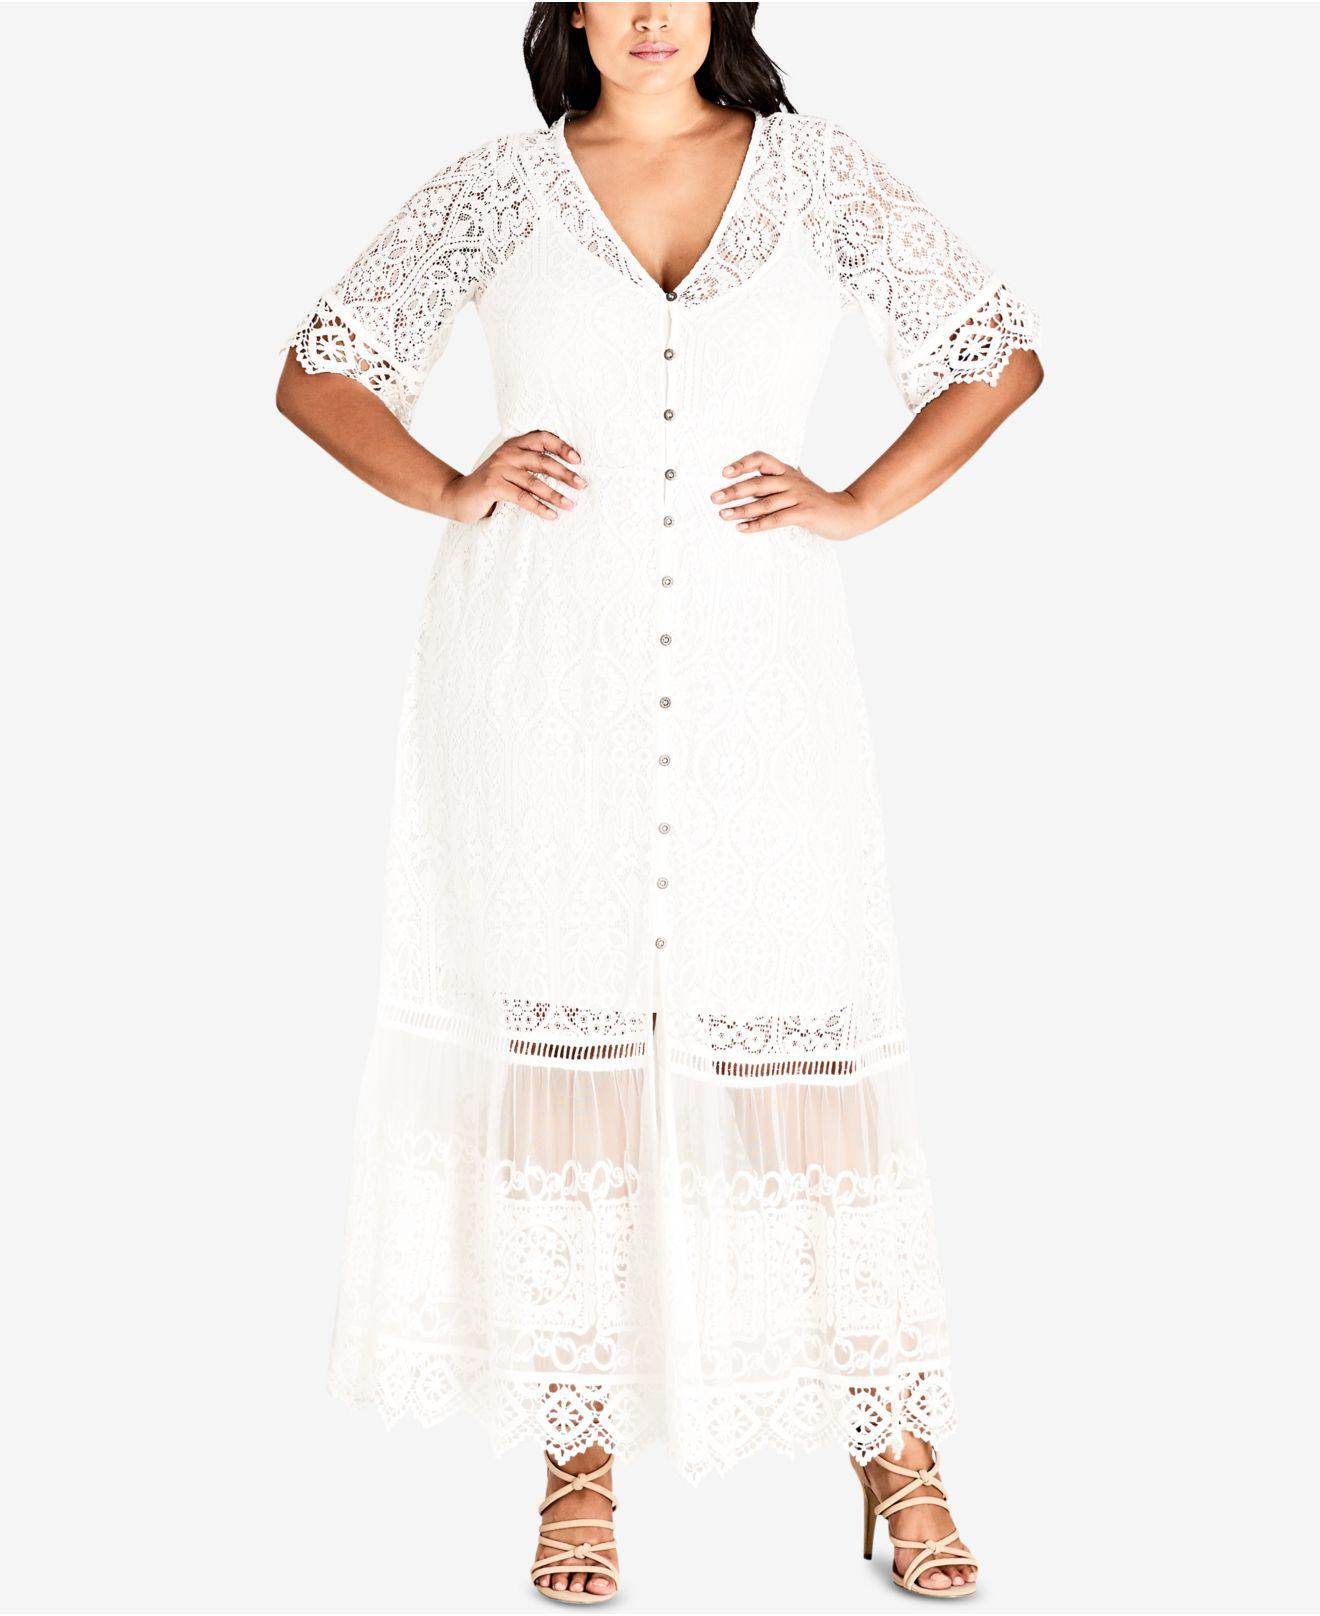 631fc1dd7b7 Lyst - City Chic Trendy Plus Size Lace Maxi Dress in White